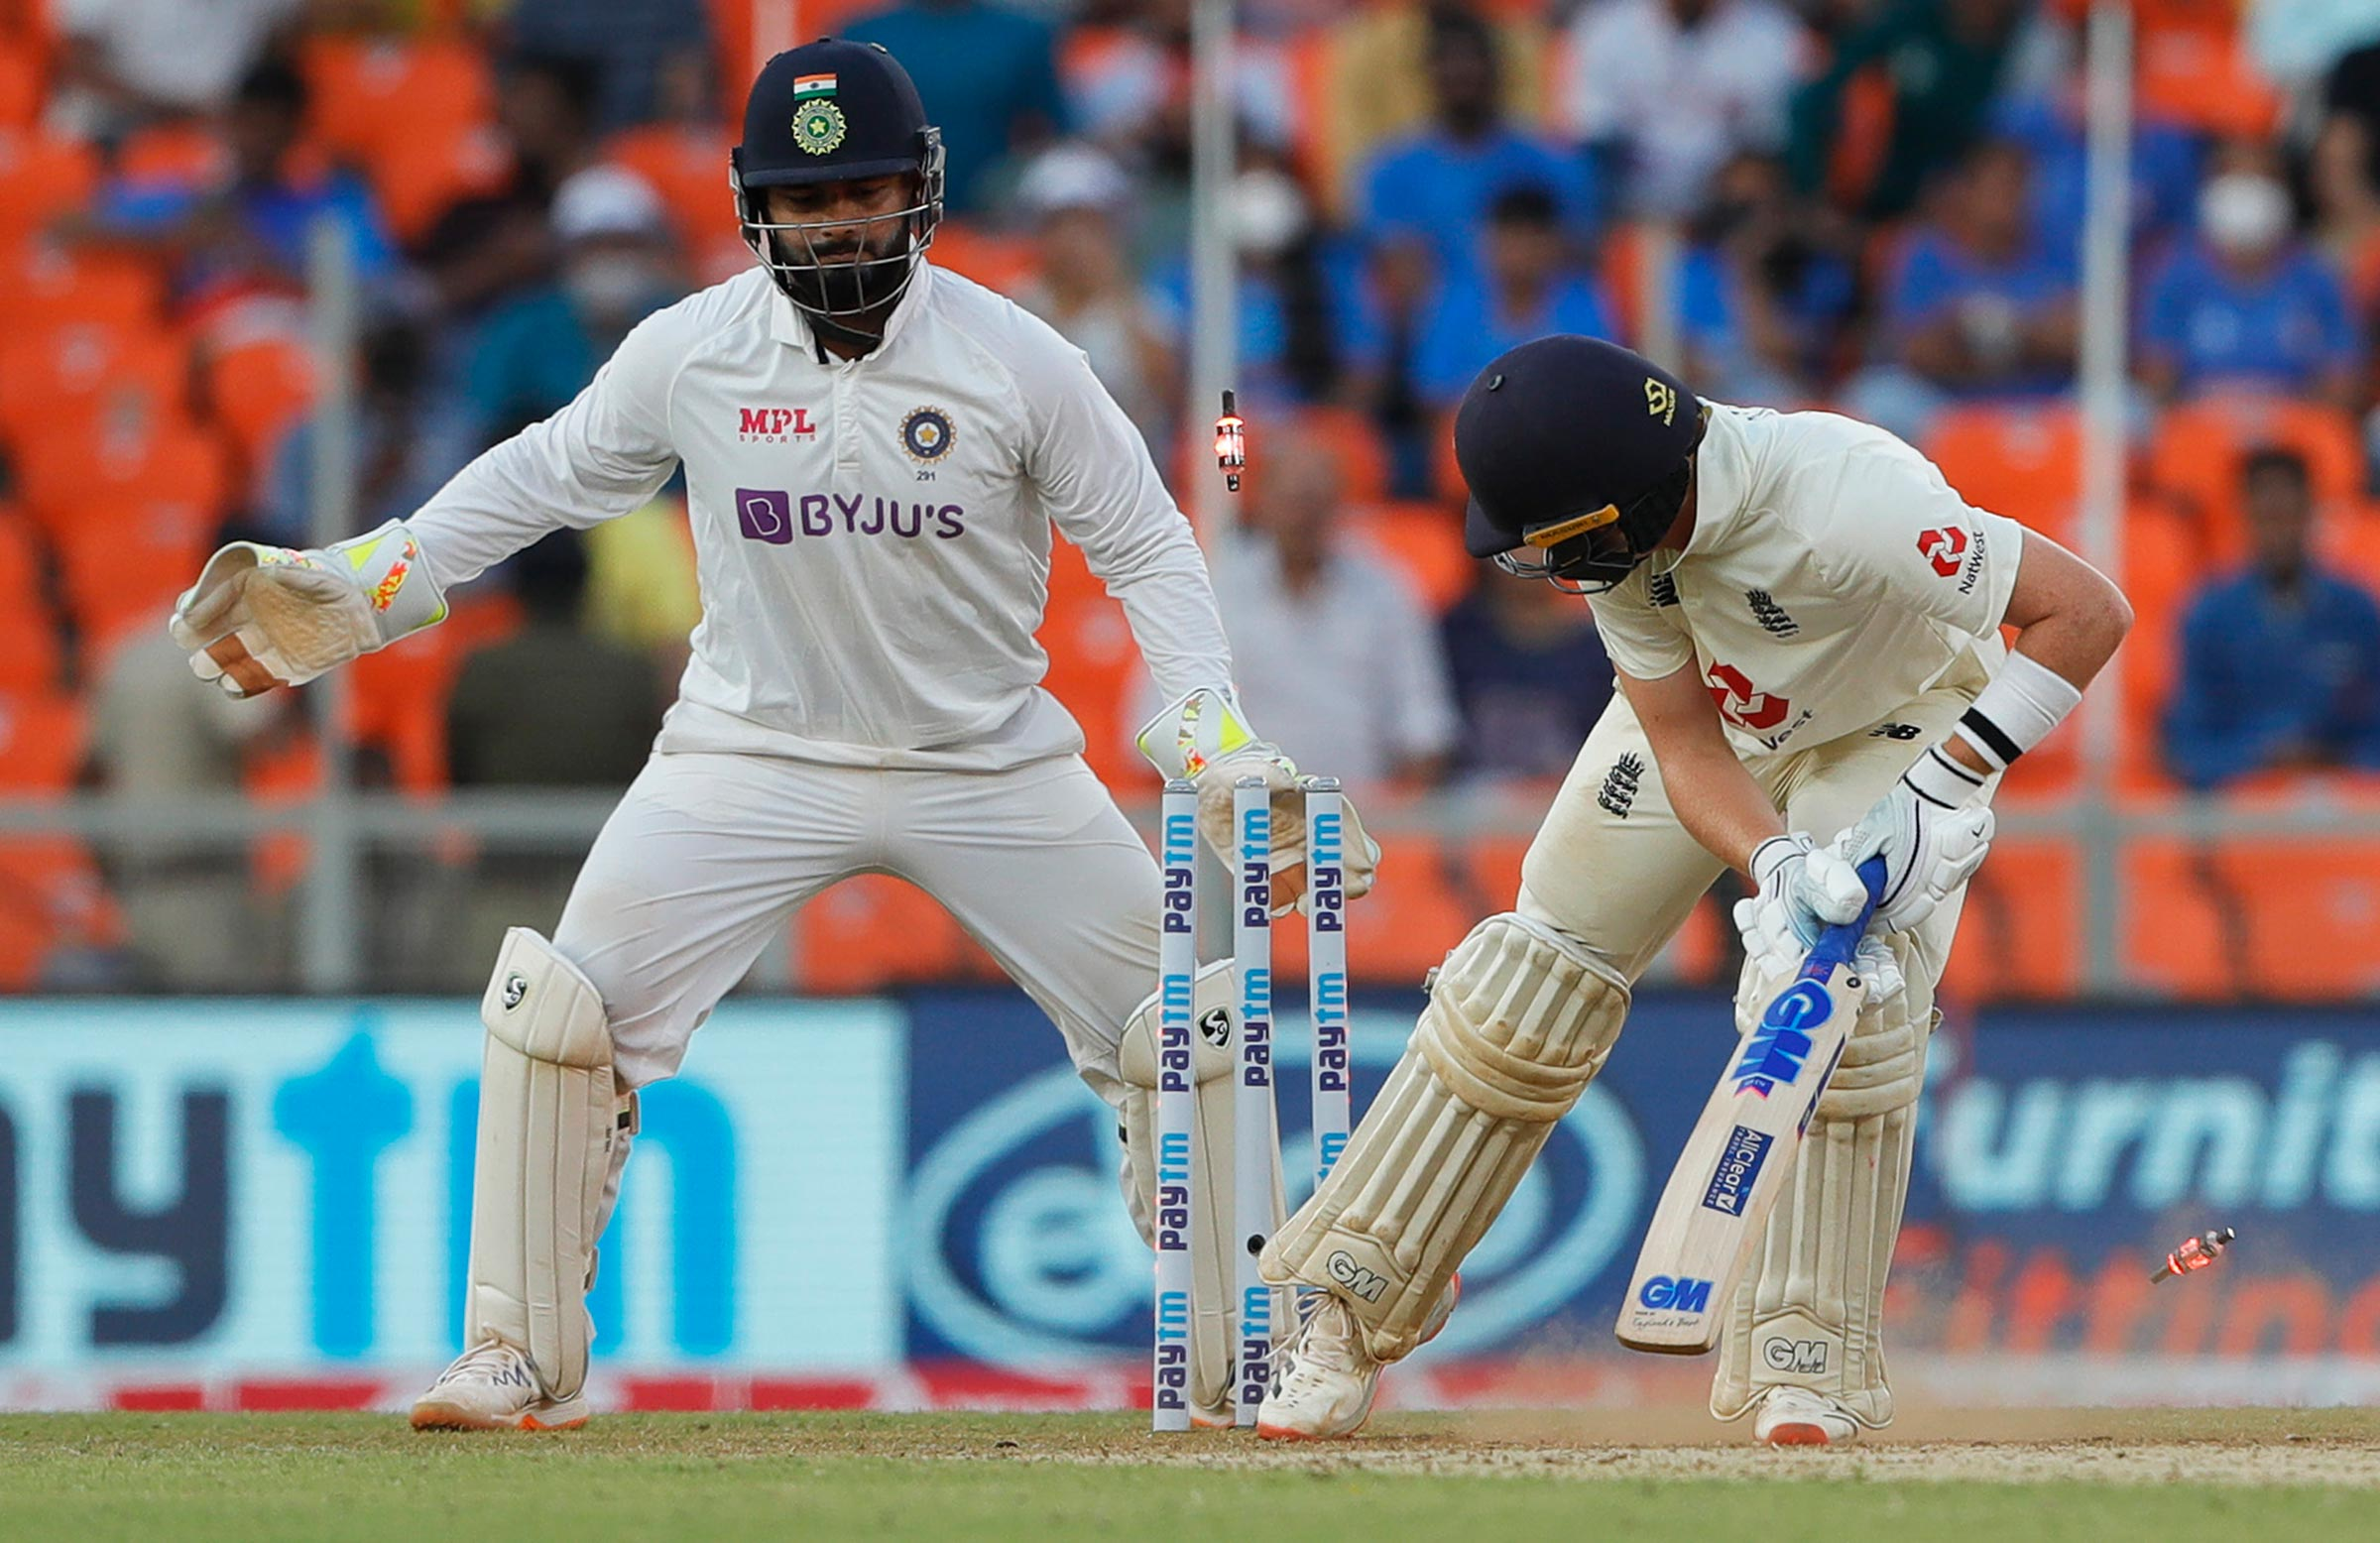 Ollie Pope is bowled by R Ashwin // BCCI-Sportzpics